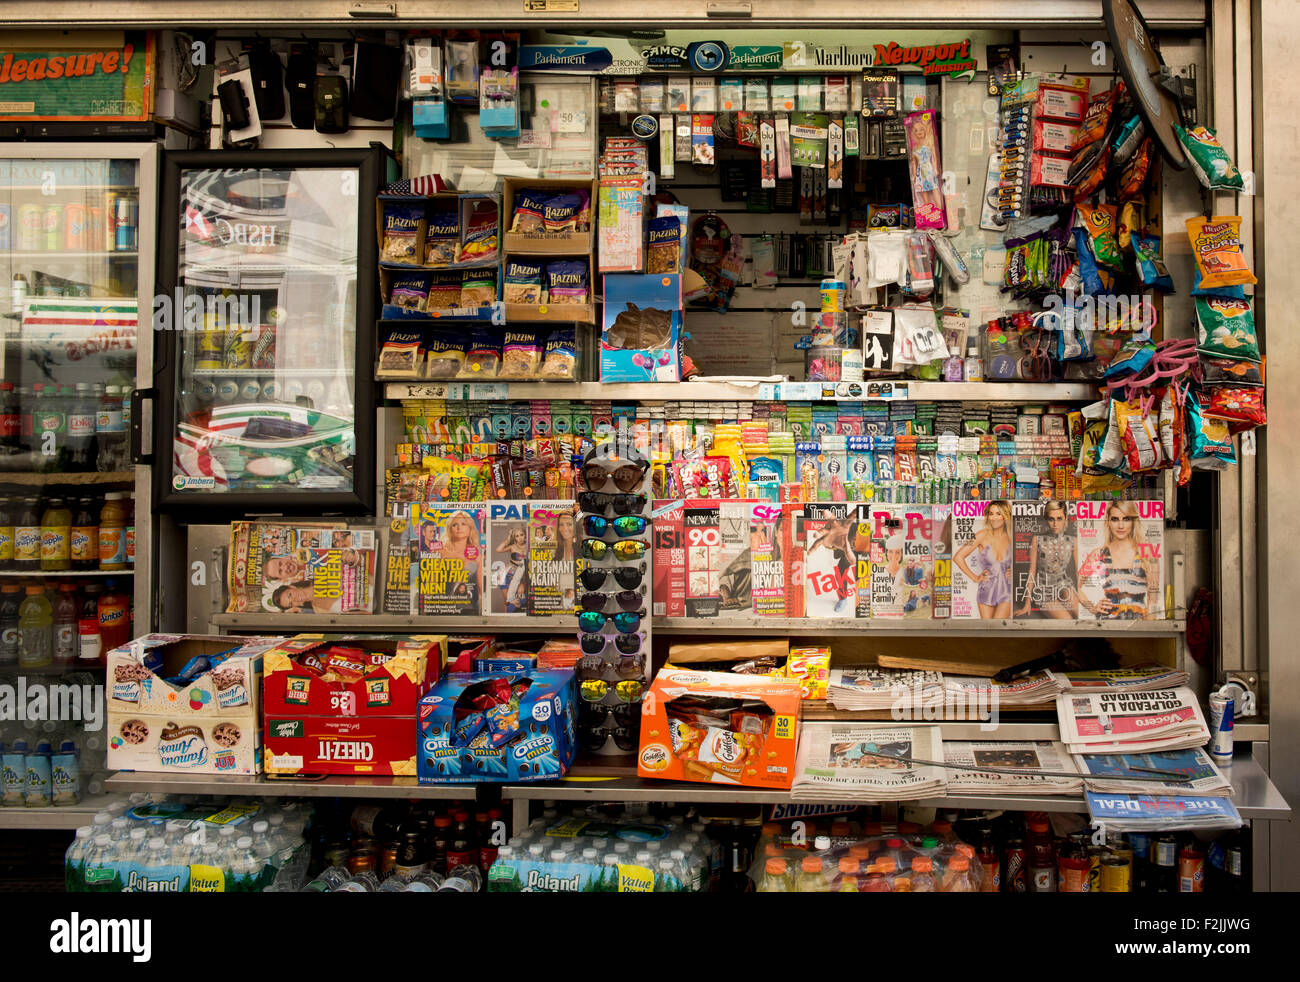 A cluttered Manhattan newsstand selling newspapers, magazines, snacks, sodas, sunglasses and cigarettes;  New York - Stock Image